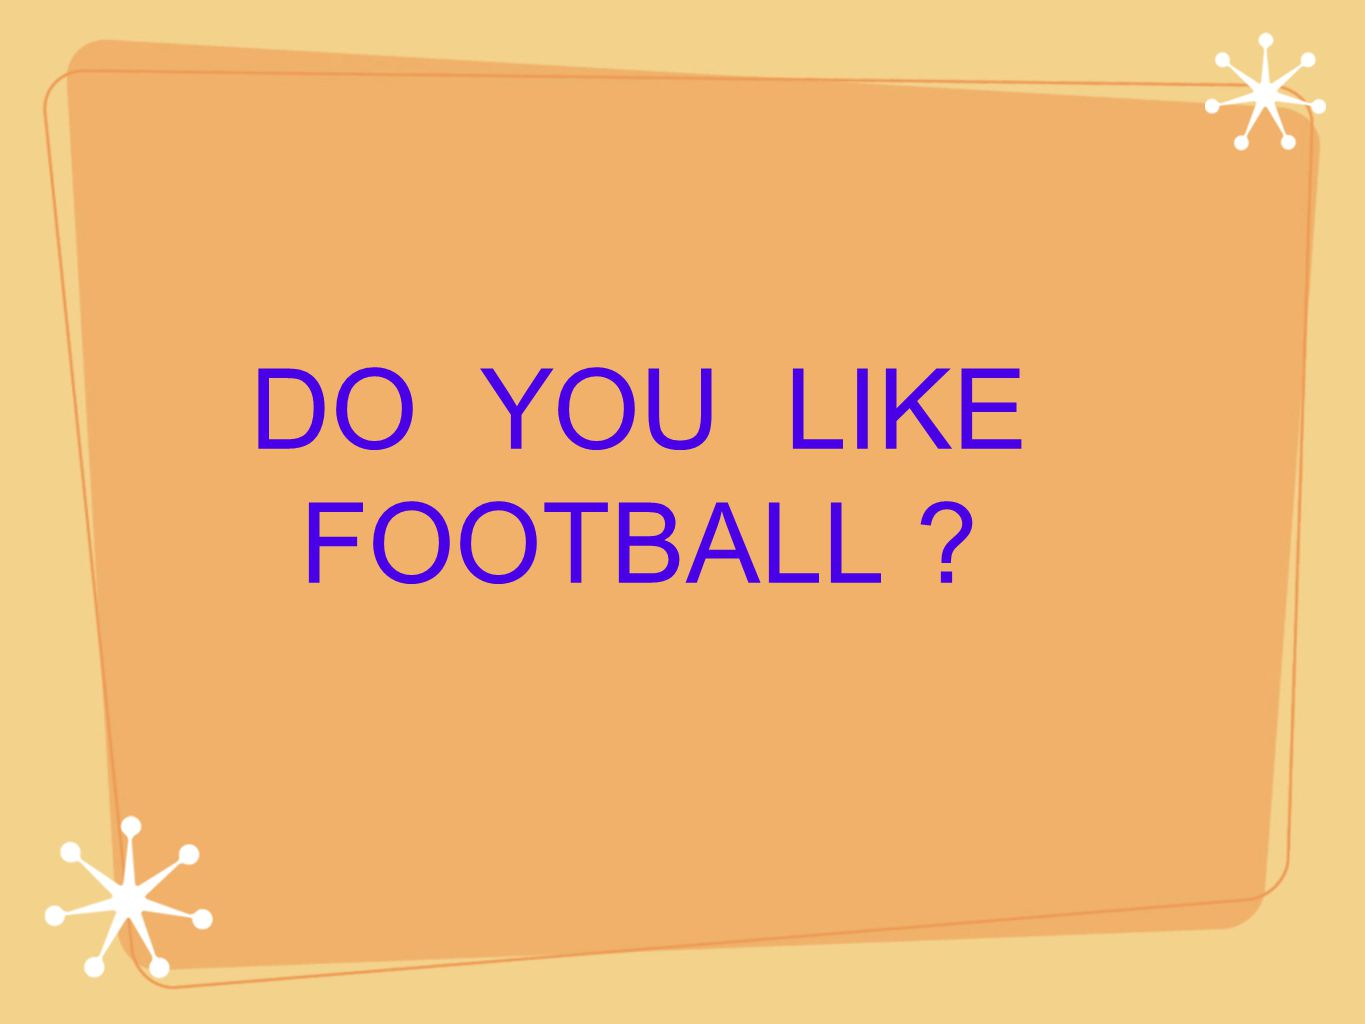 DO YOU LIKE FOOTBALL